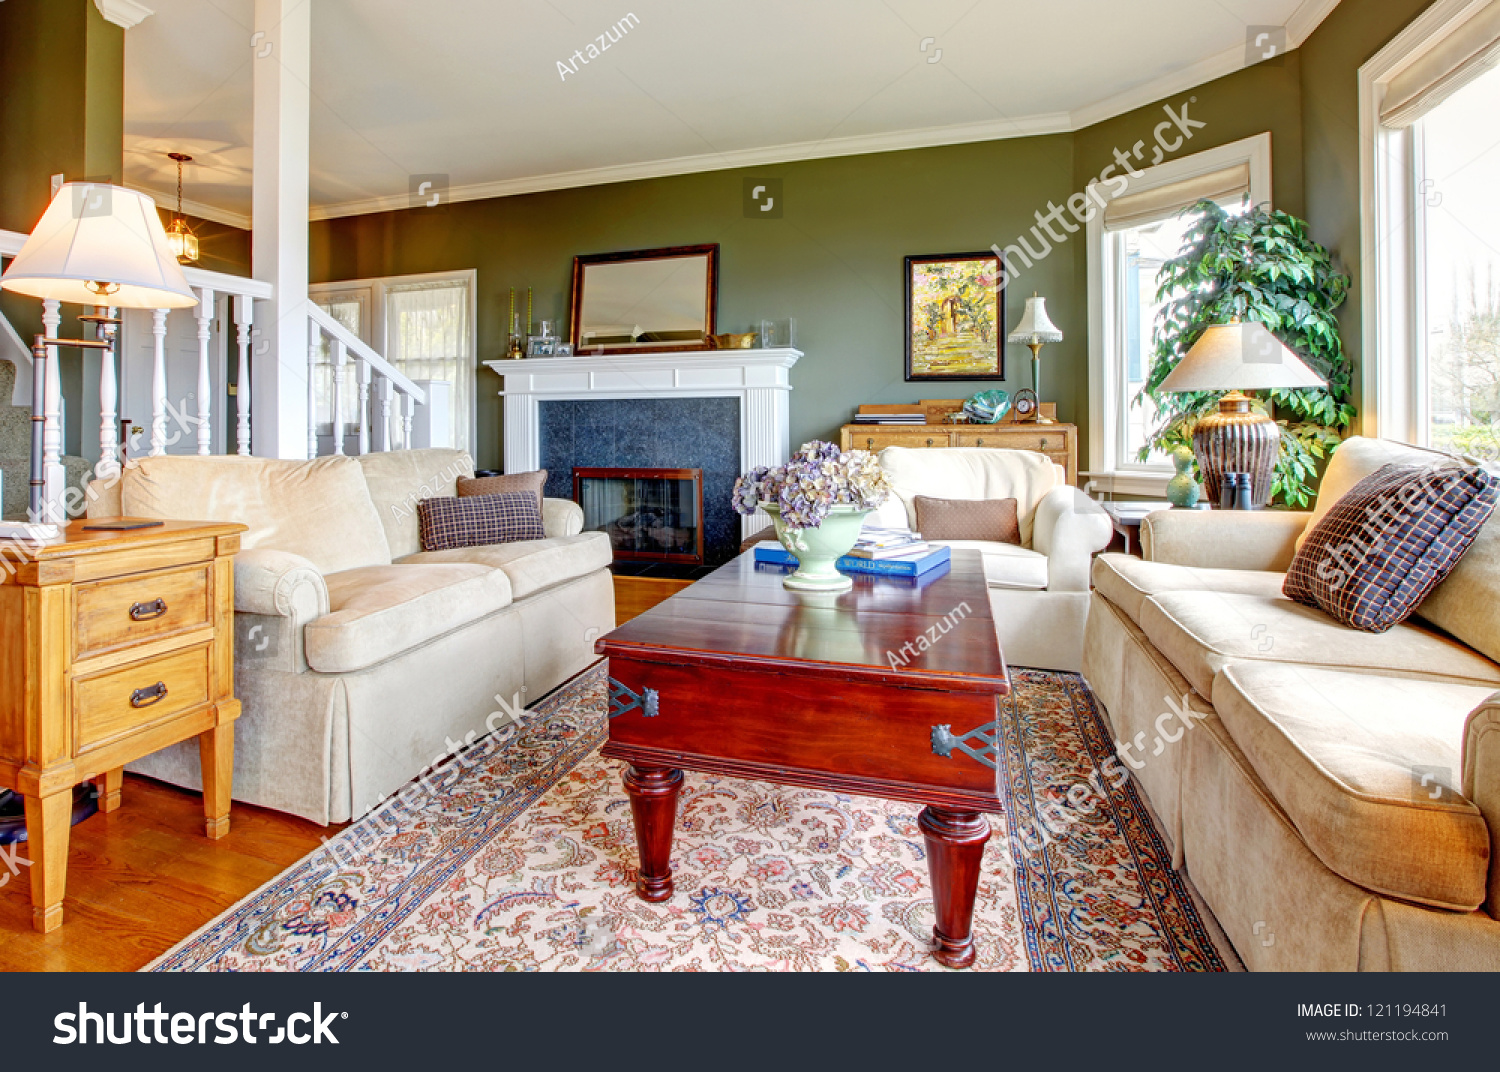 Nice Chairs For Living Room: Classic Green Living Room With Nice Furniture, Fireplace